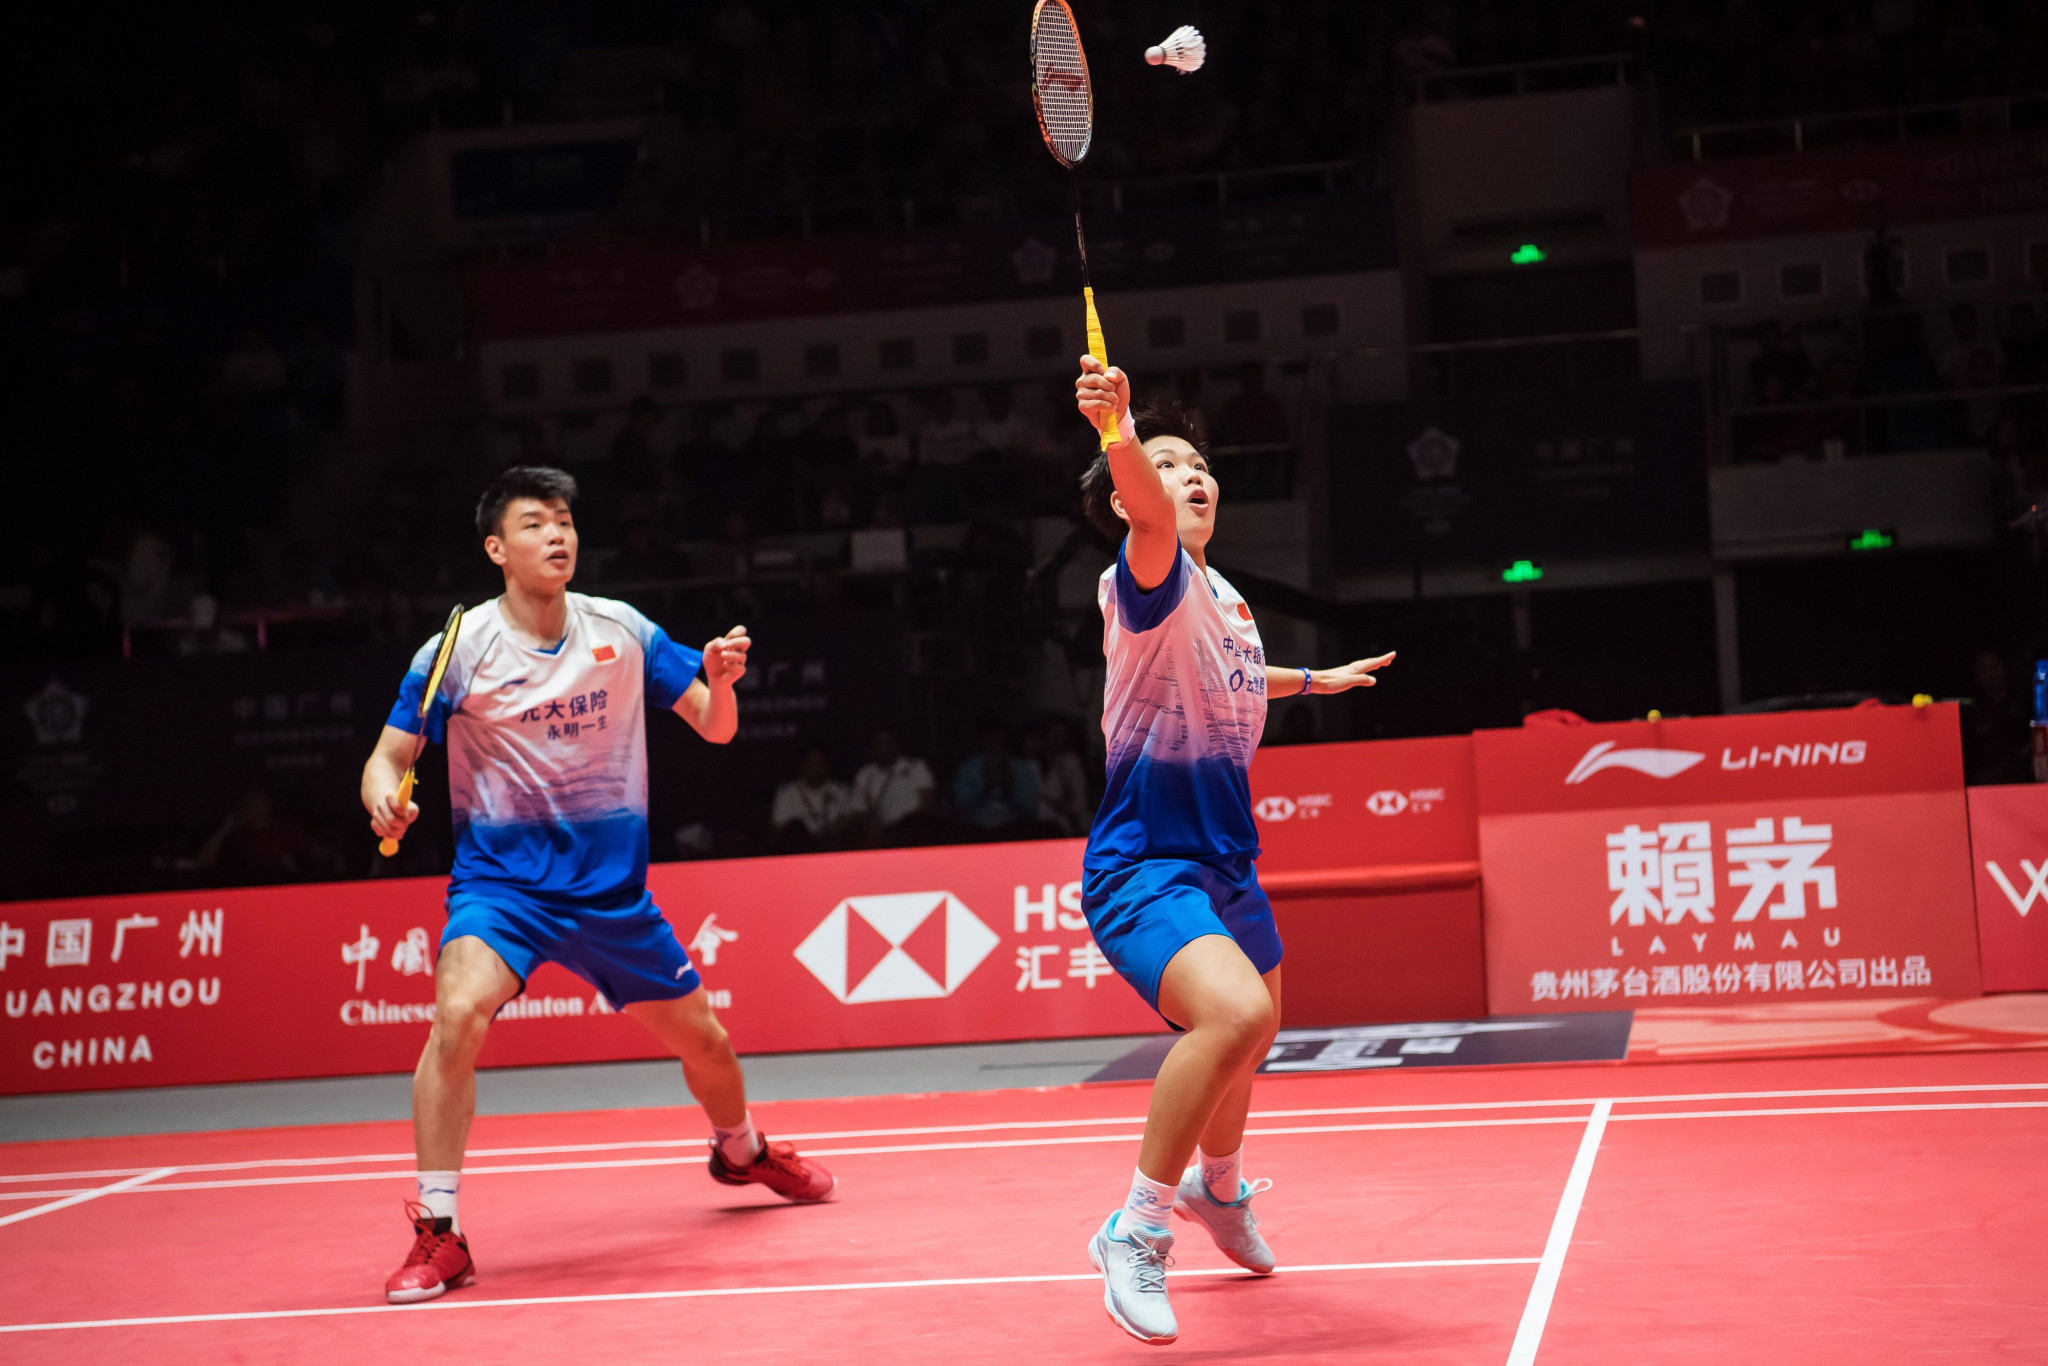 The BWF World Tour Finals are still planned but the venue is now unconfirmed  ©Getty Images